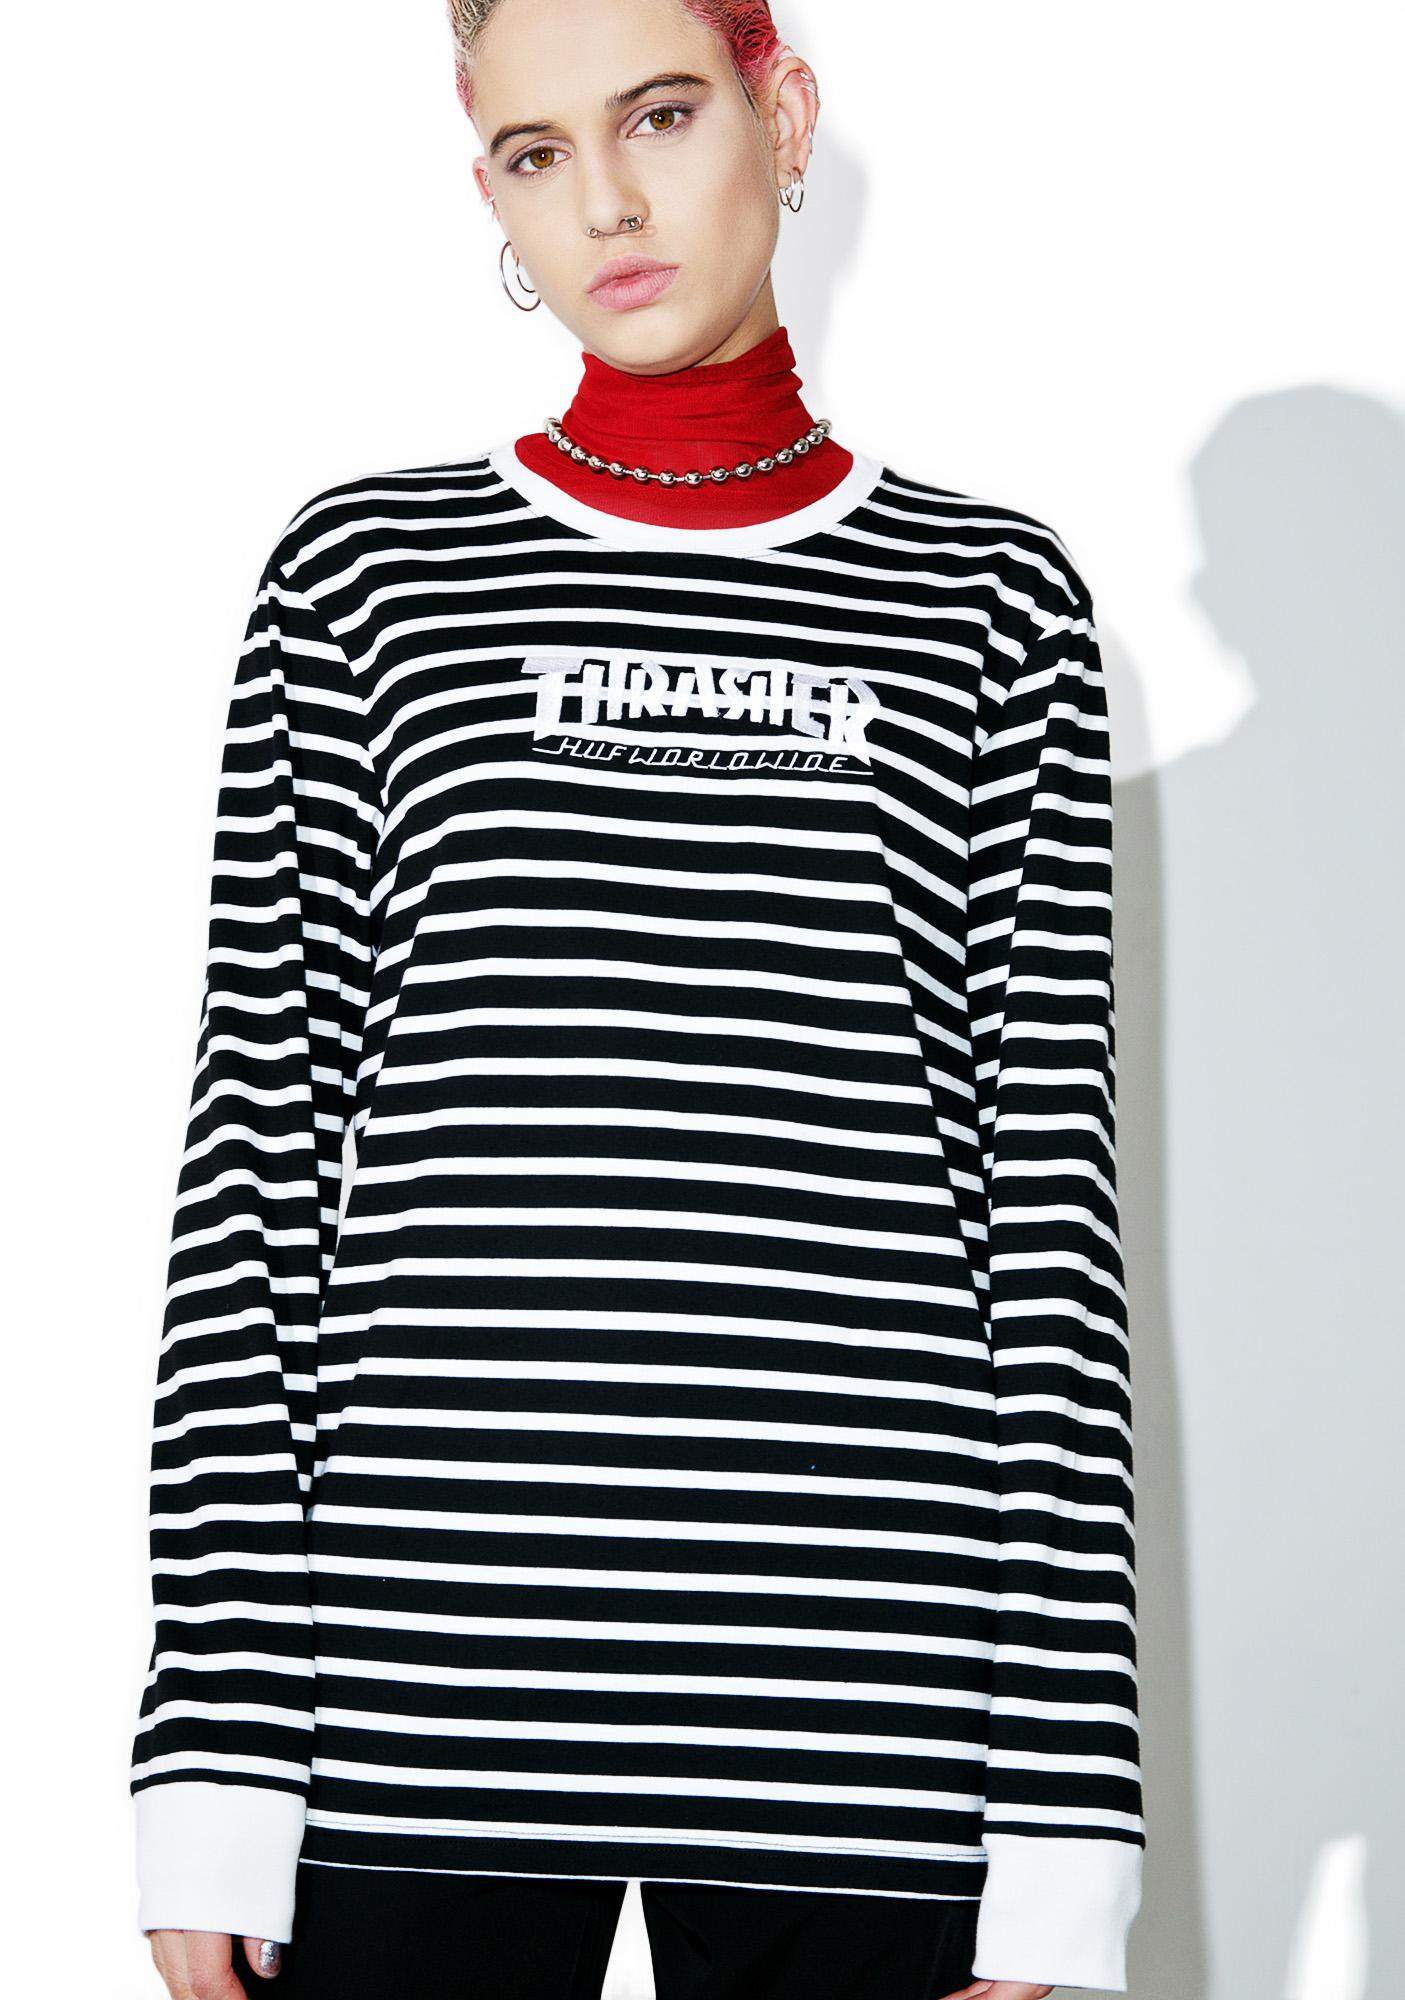 HUF X Thrasher Tour De Stoops Stripe Tee